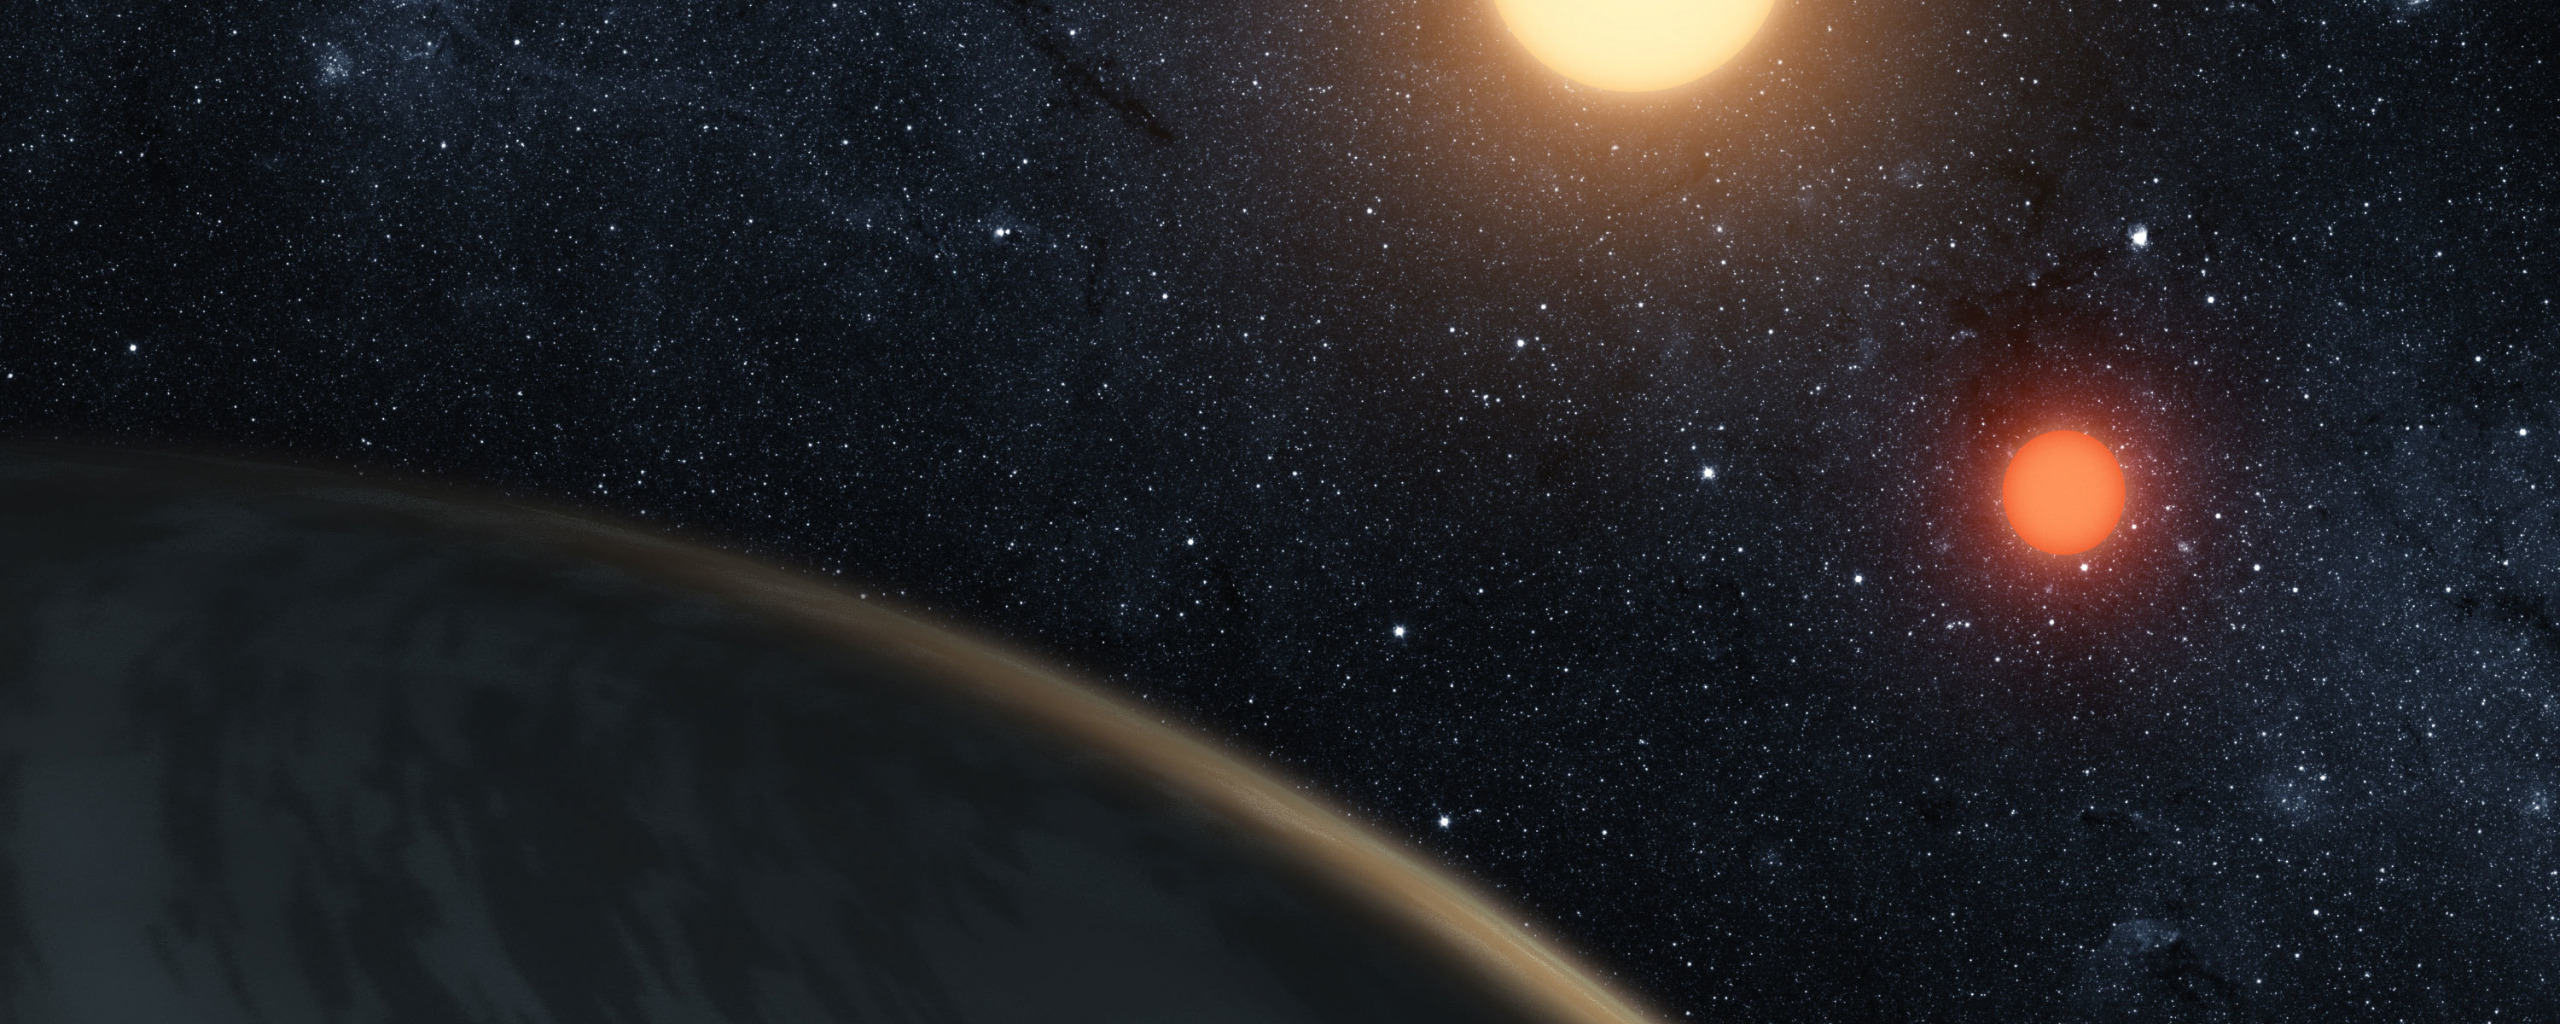 exoplanet backgrounds free - HD 2560×1024